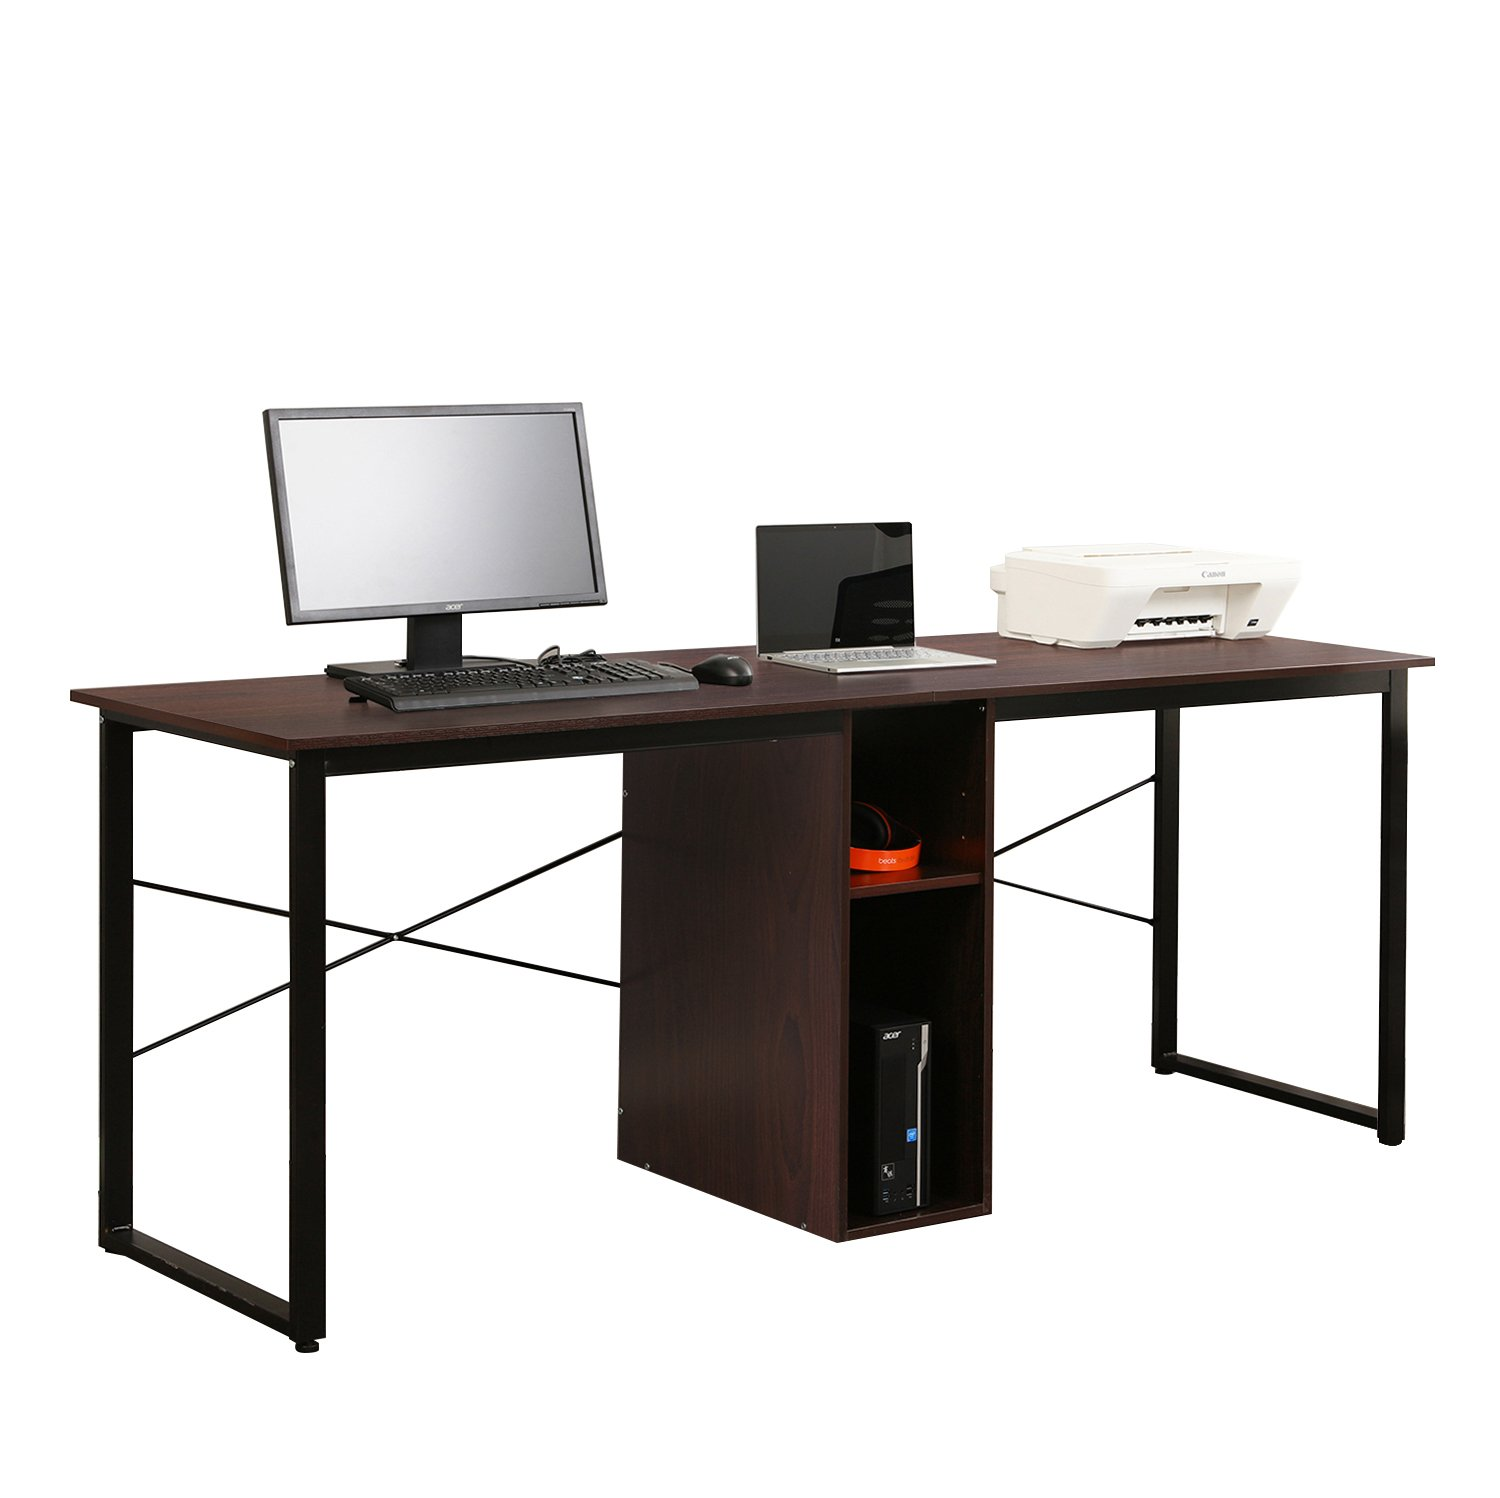 DlandHome Double Computer Desk 78'' Extra Long w/Open Adjustable Storage Multifunction Gaming Table/Studio Workstation for Home Office, Maple HZ011-W Walnut